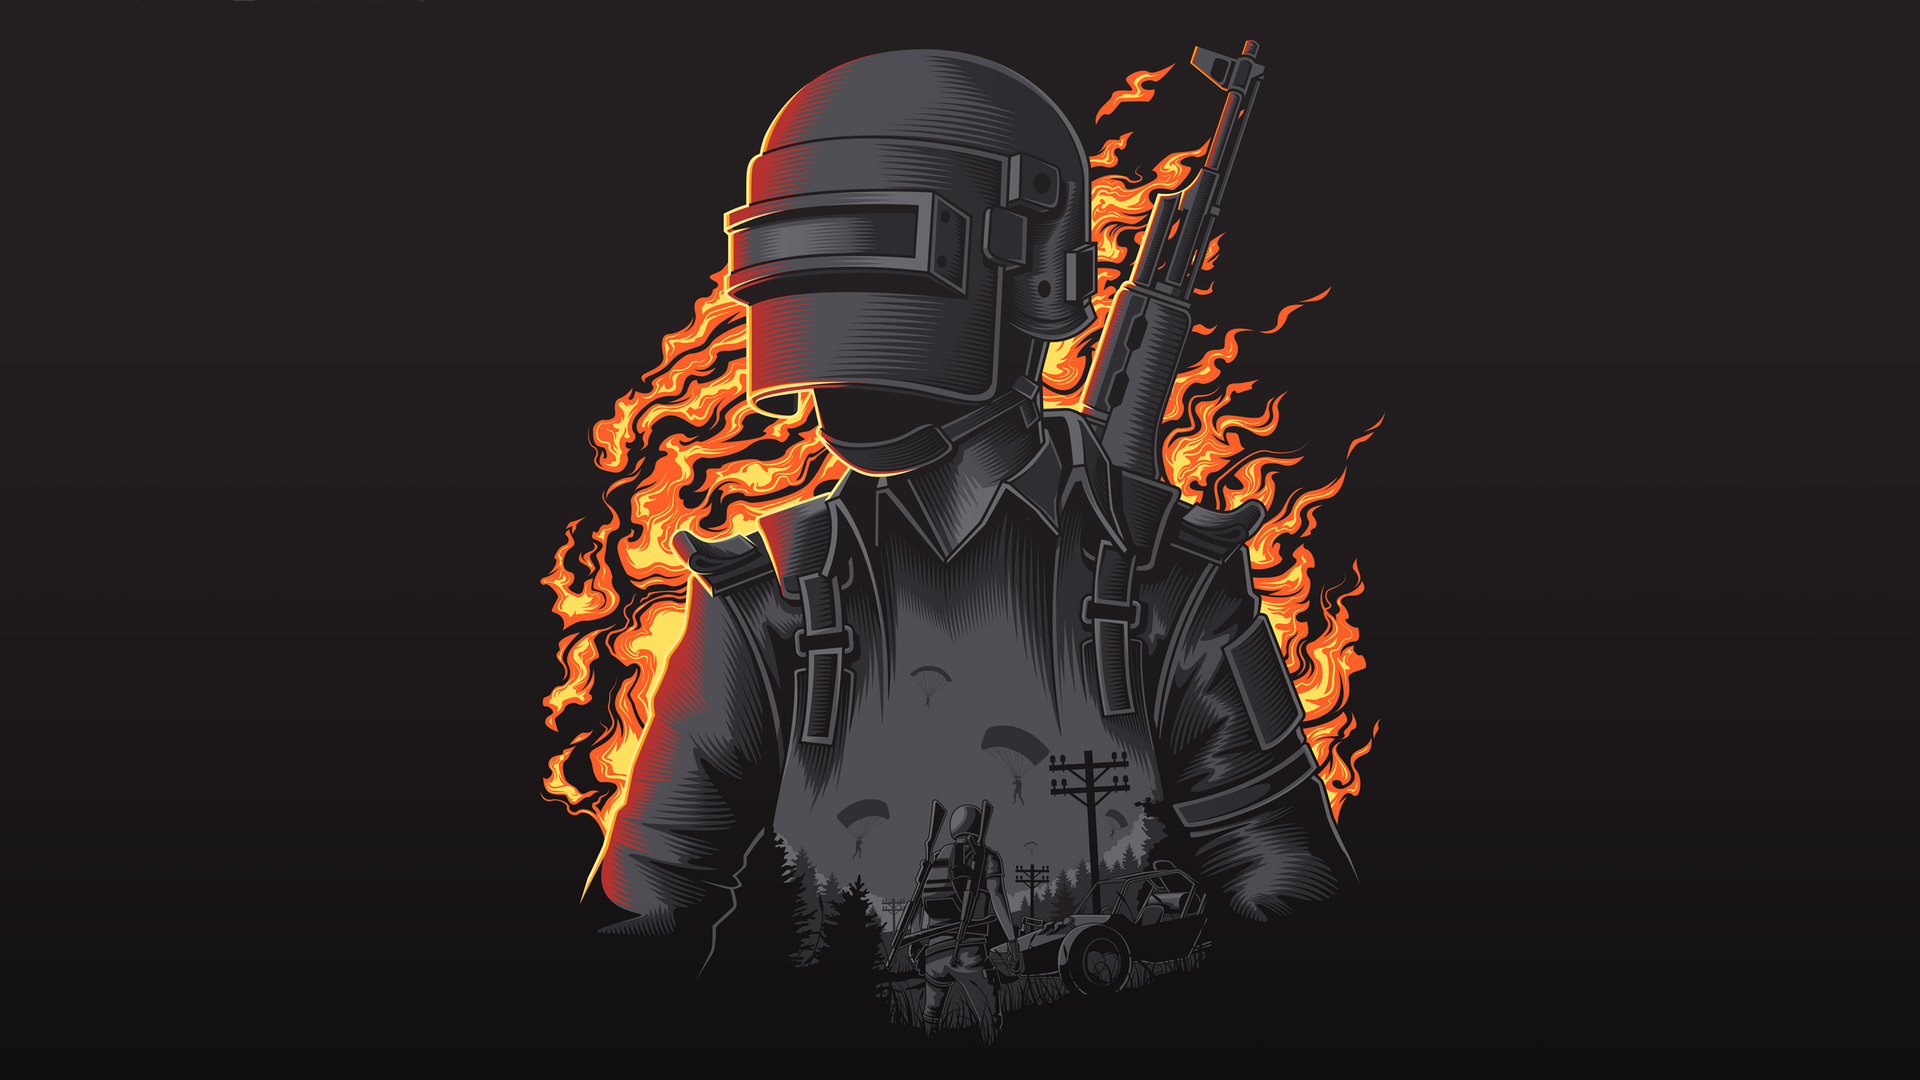 1920x1080 Pubg Illustration 4k Laptop Full HD 1080P HD 4k